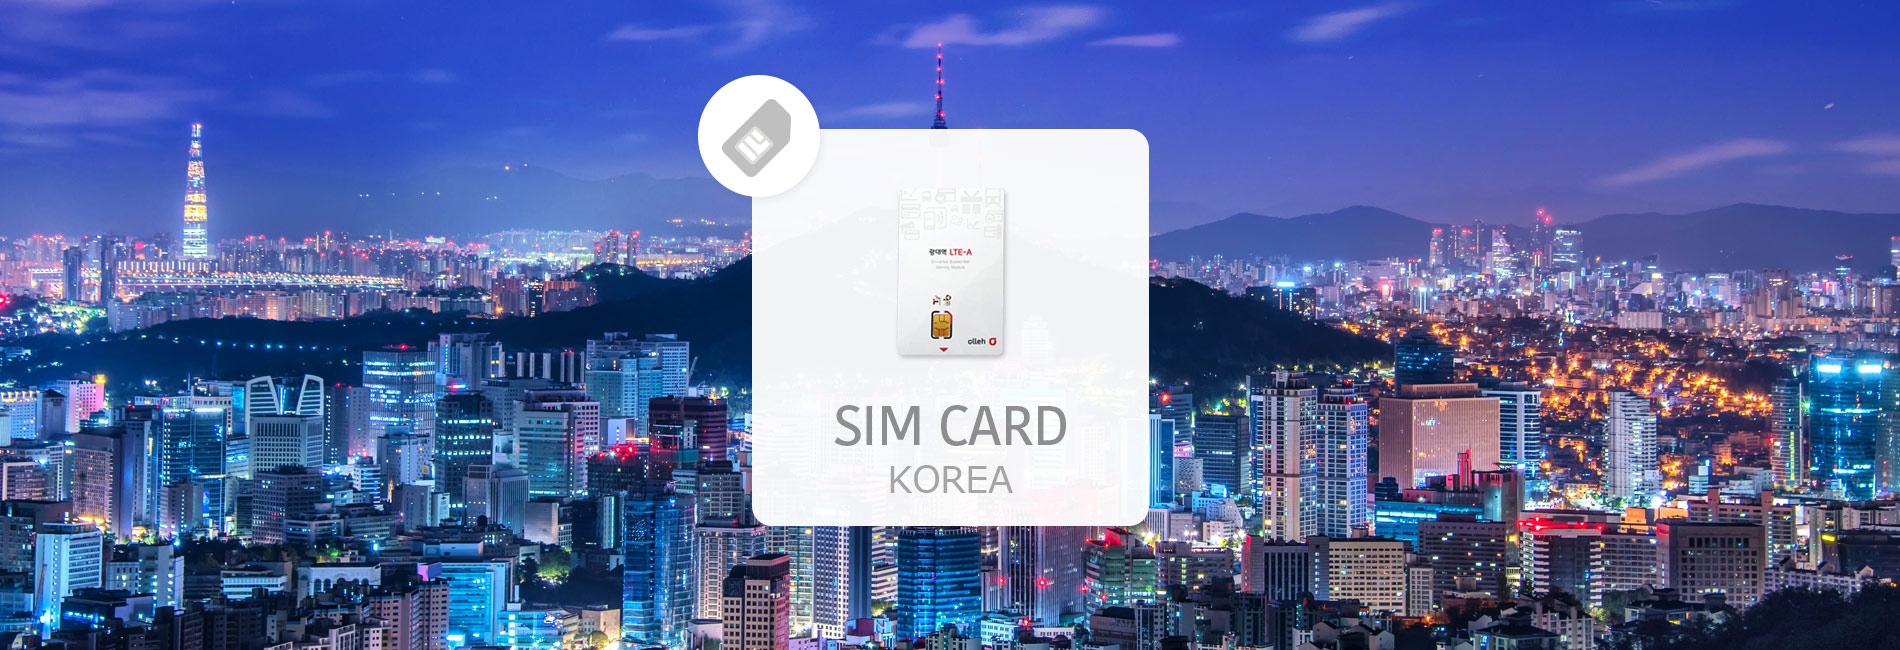 South Korea Unlimited 4G/LTE SIM Card (Pick-Up in Korea)